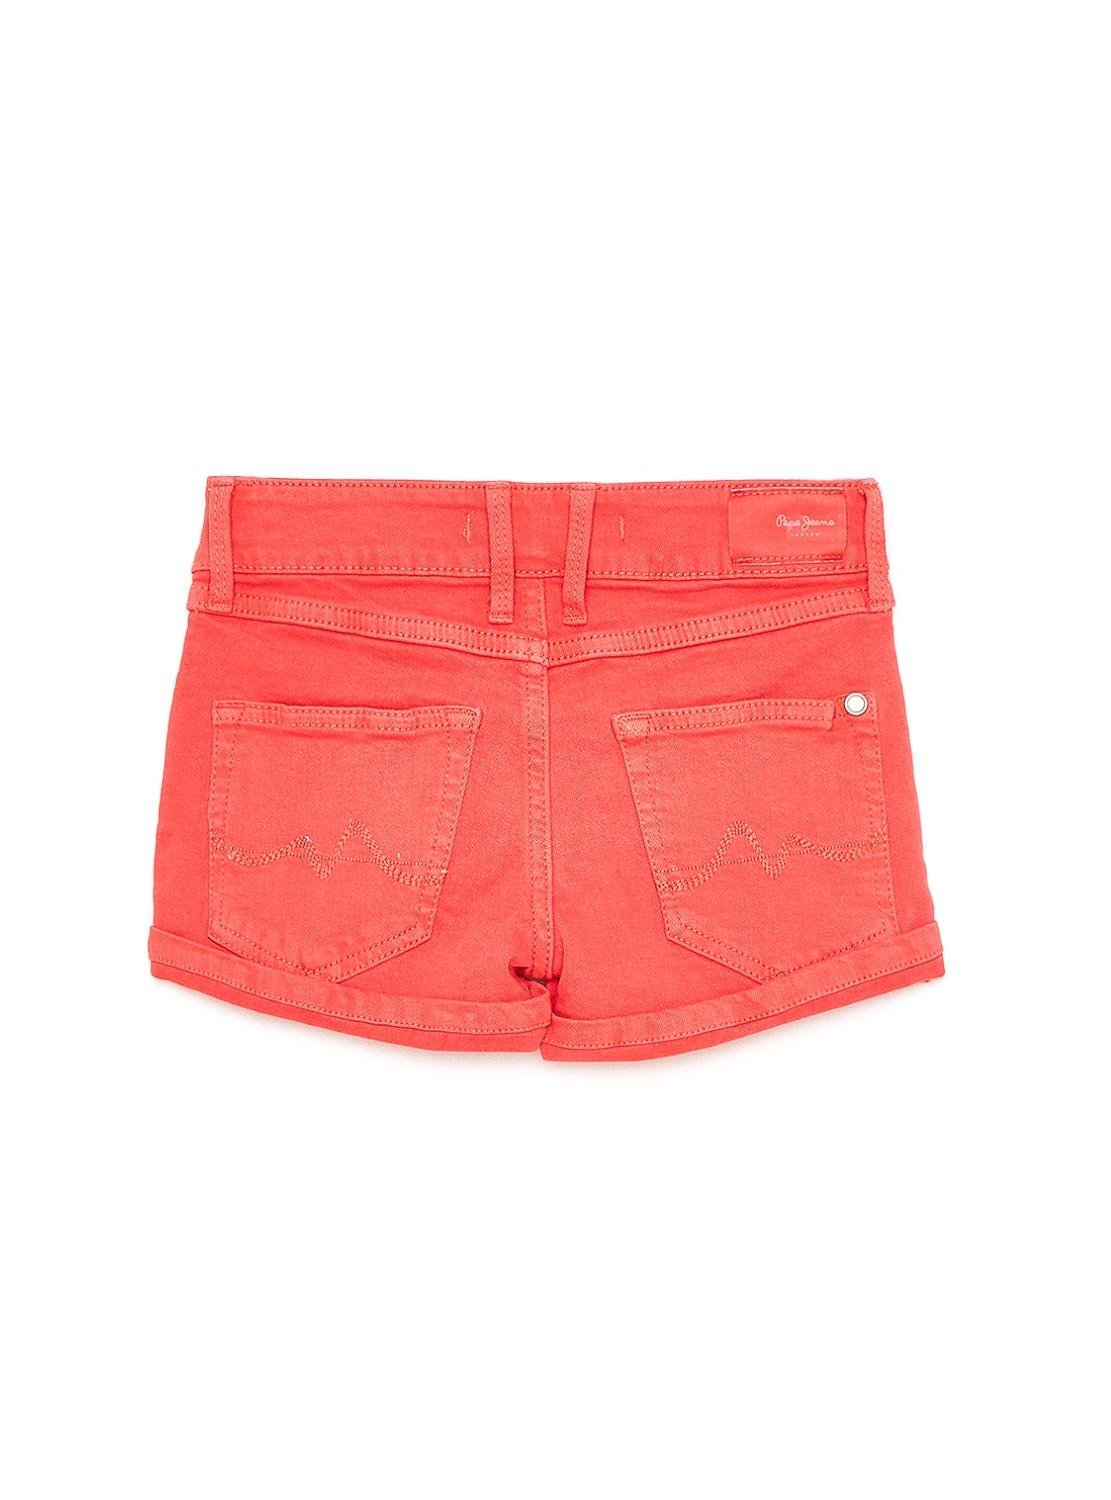 Shorts Pepe Jeans Tail Rojos